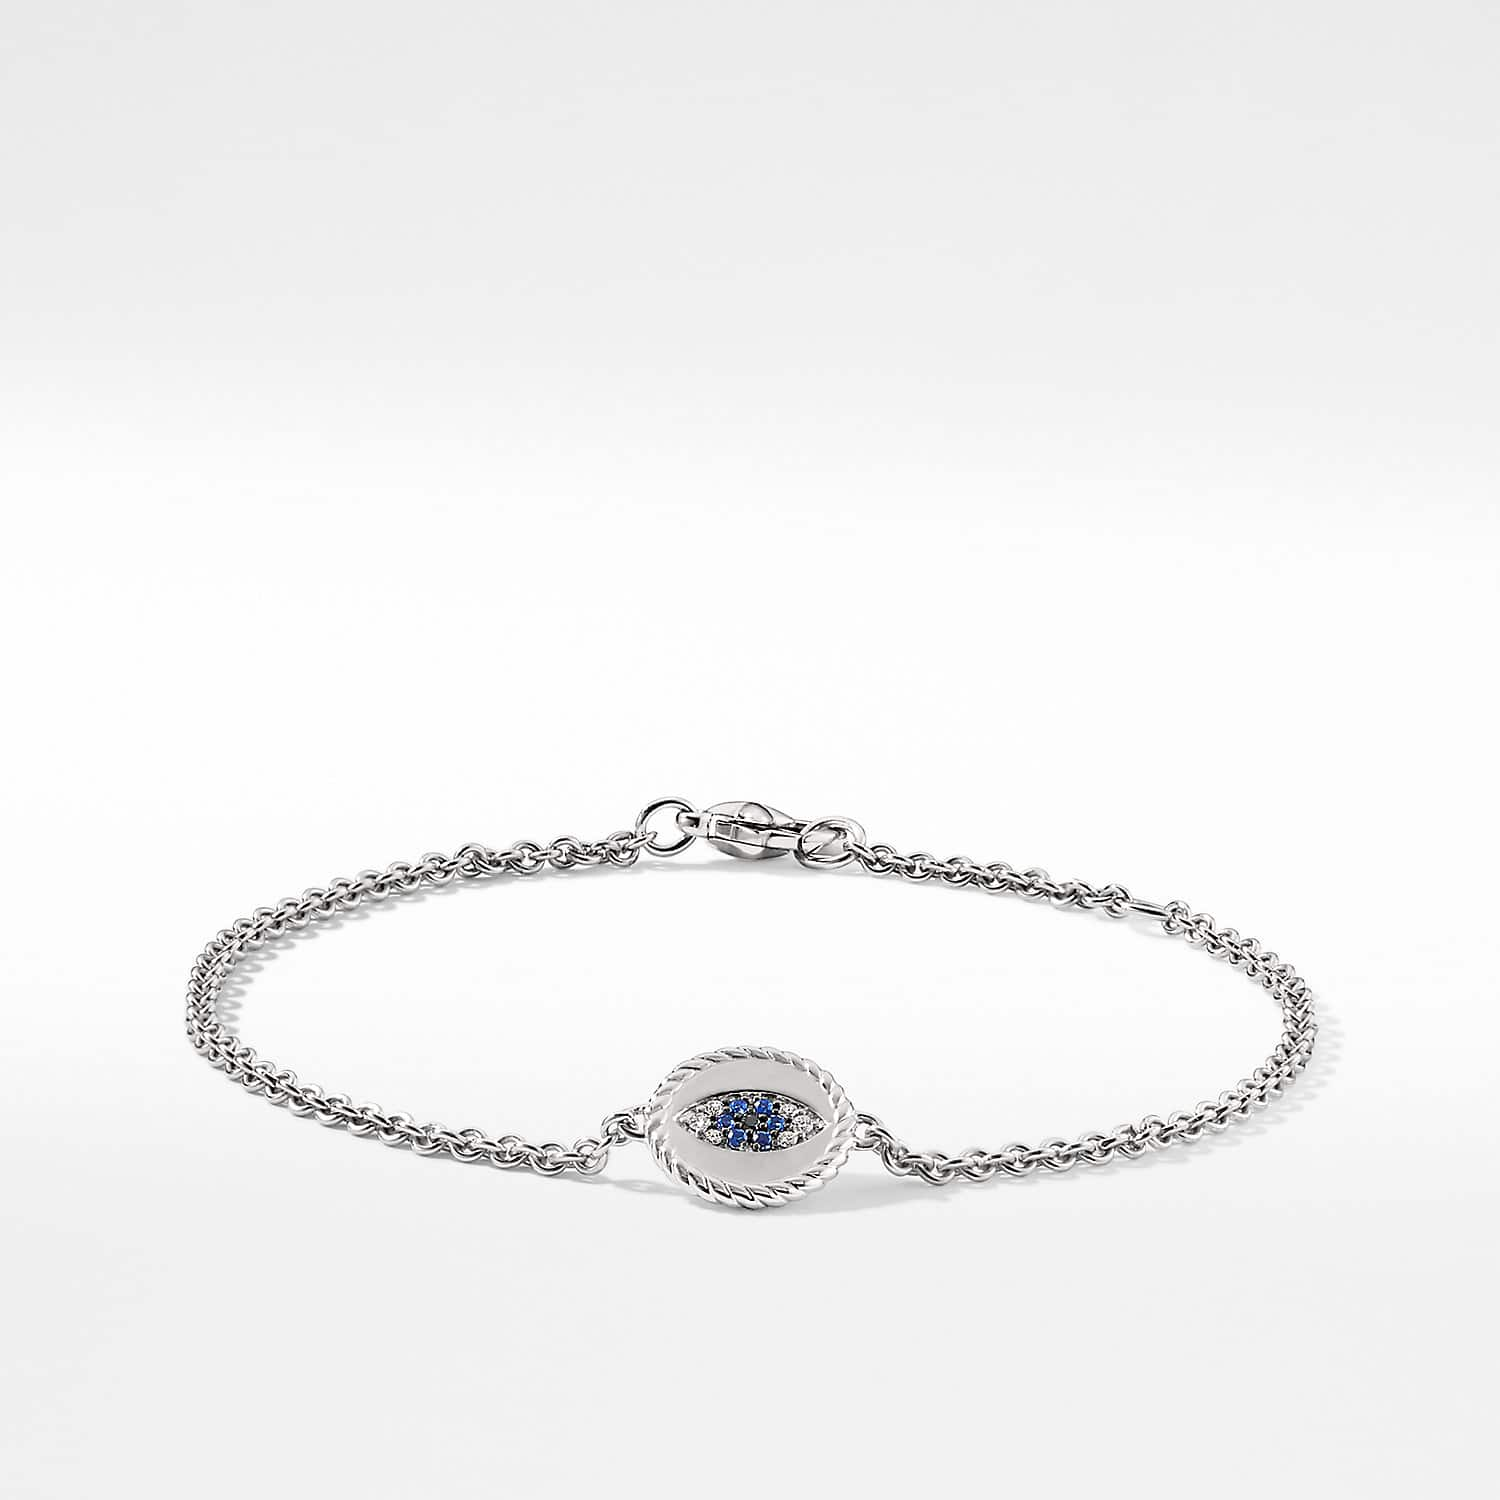 Cable Collectibles Evil Eye Bracelet With Diamonds And Light Blue Shires In 18k White Gold